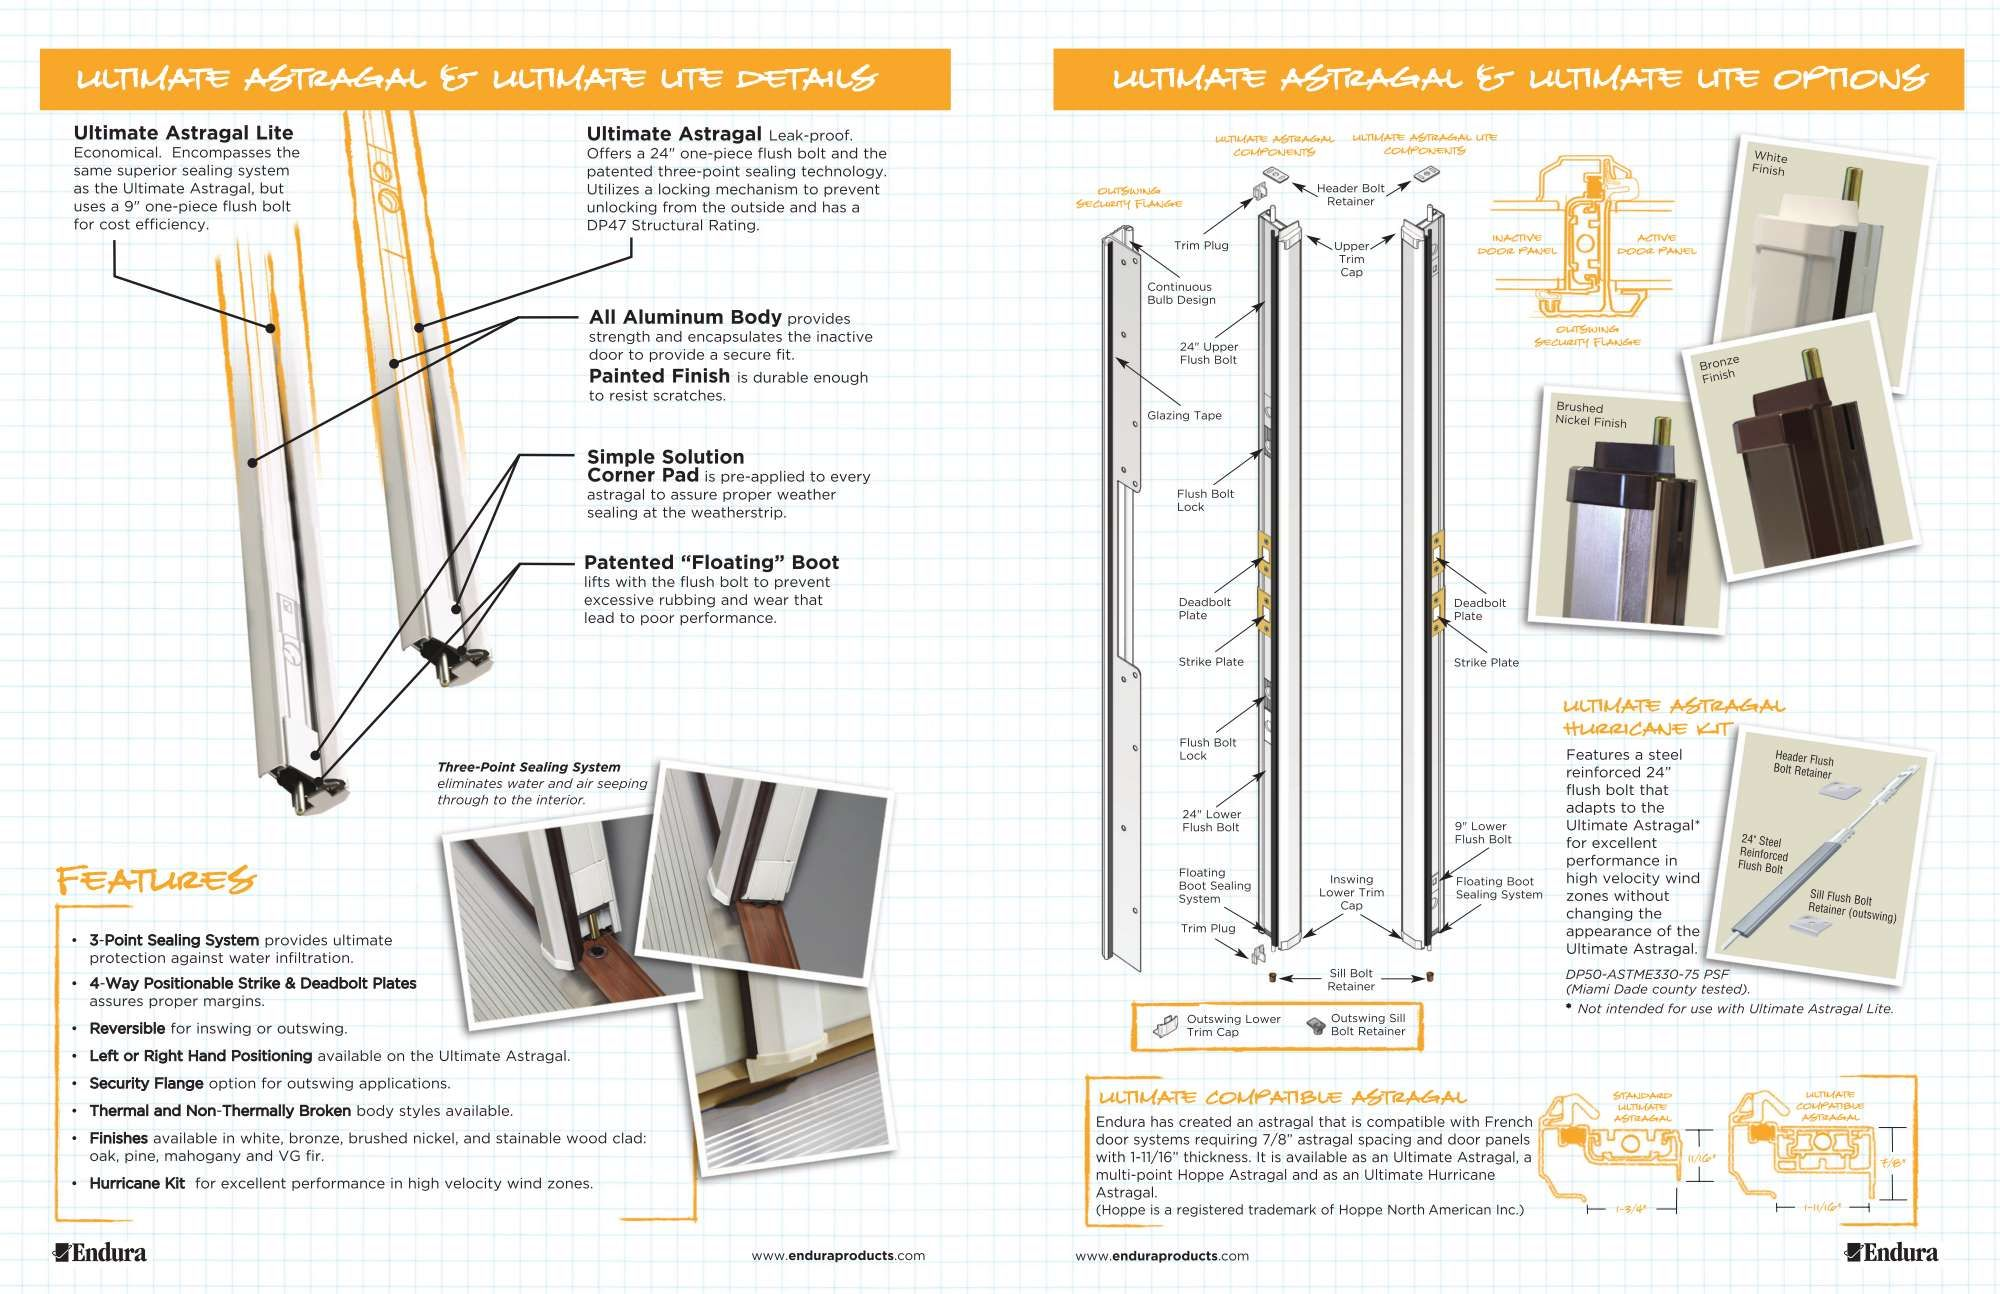 ... T Astragal French Door #18    ImgRepos\Catalog_Endura_Endura_Ultimate_Astragal.pdf_07292008_164417Ultimate  Astragal French Door Solutions ...